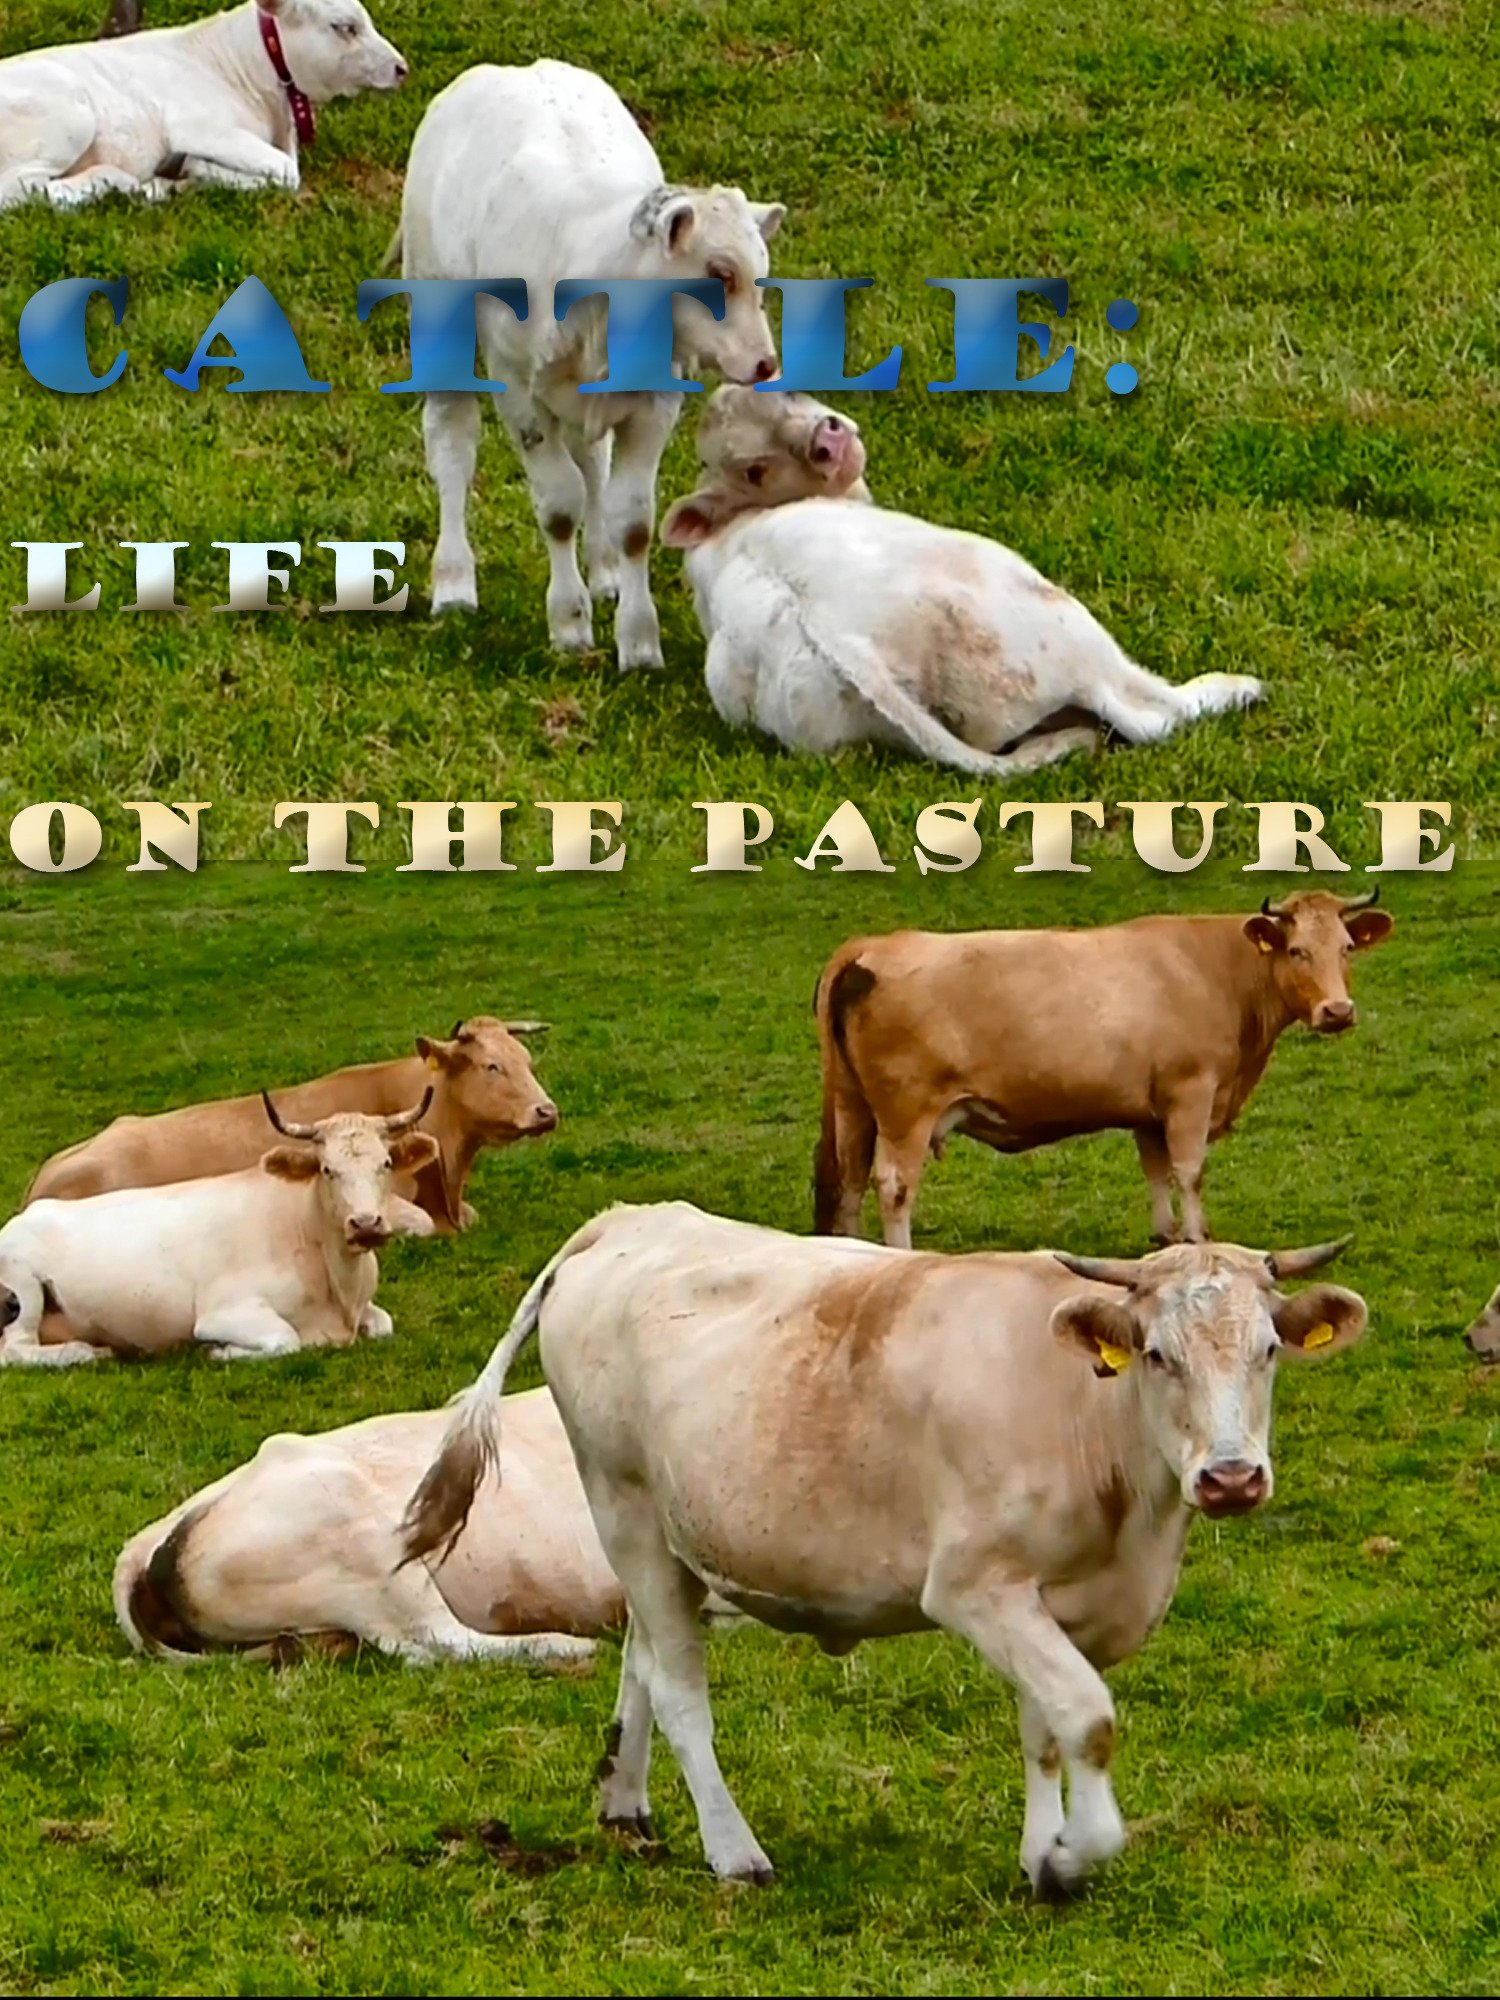 Cattle: Life on the Pasture